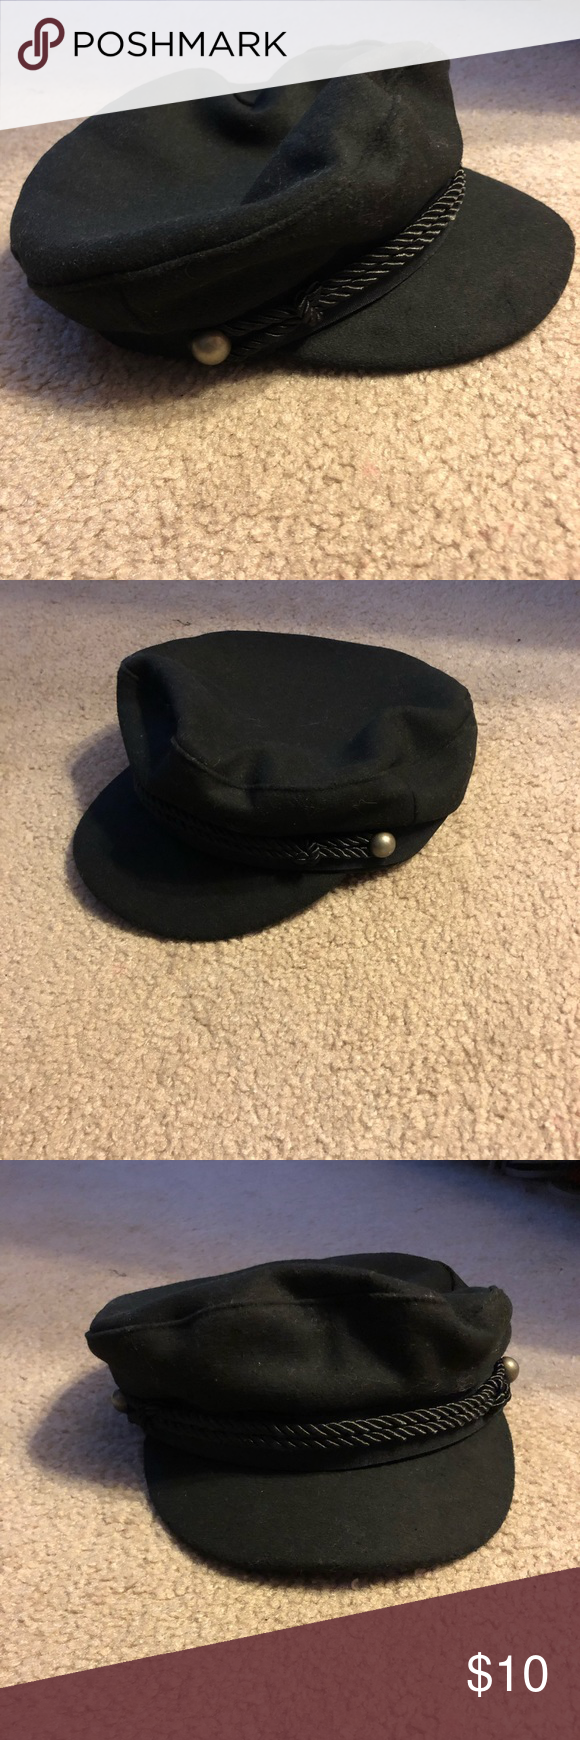 e980422b24c AE baker boy hat One size and has never been worn ! No problems just doesn